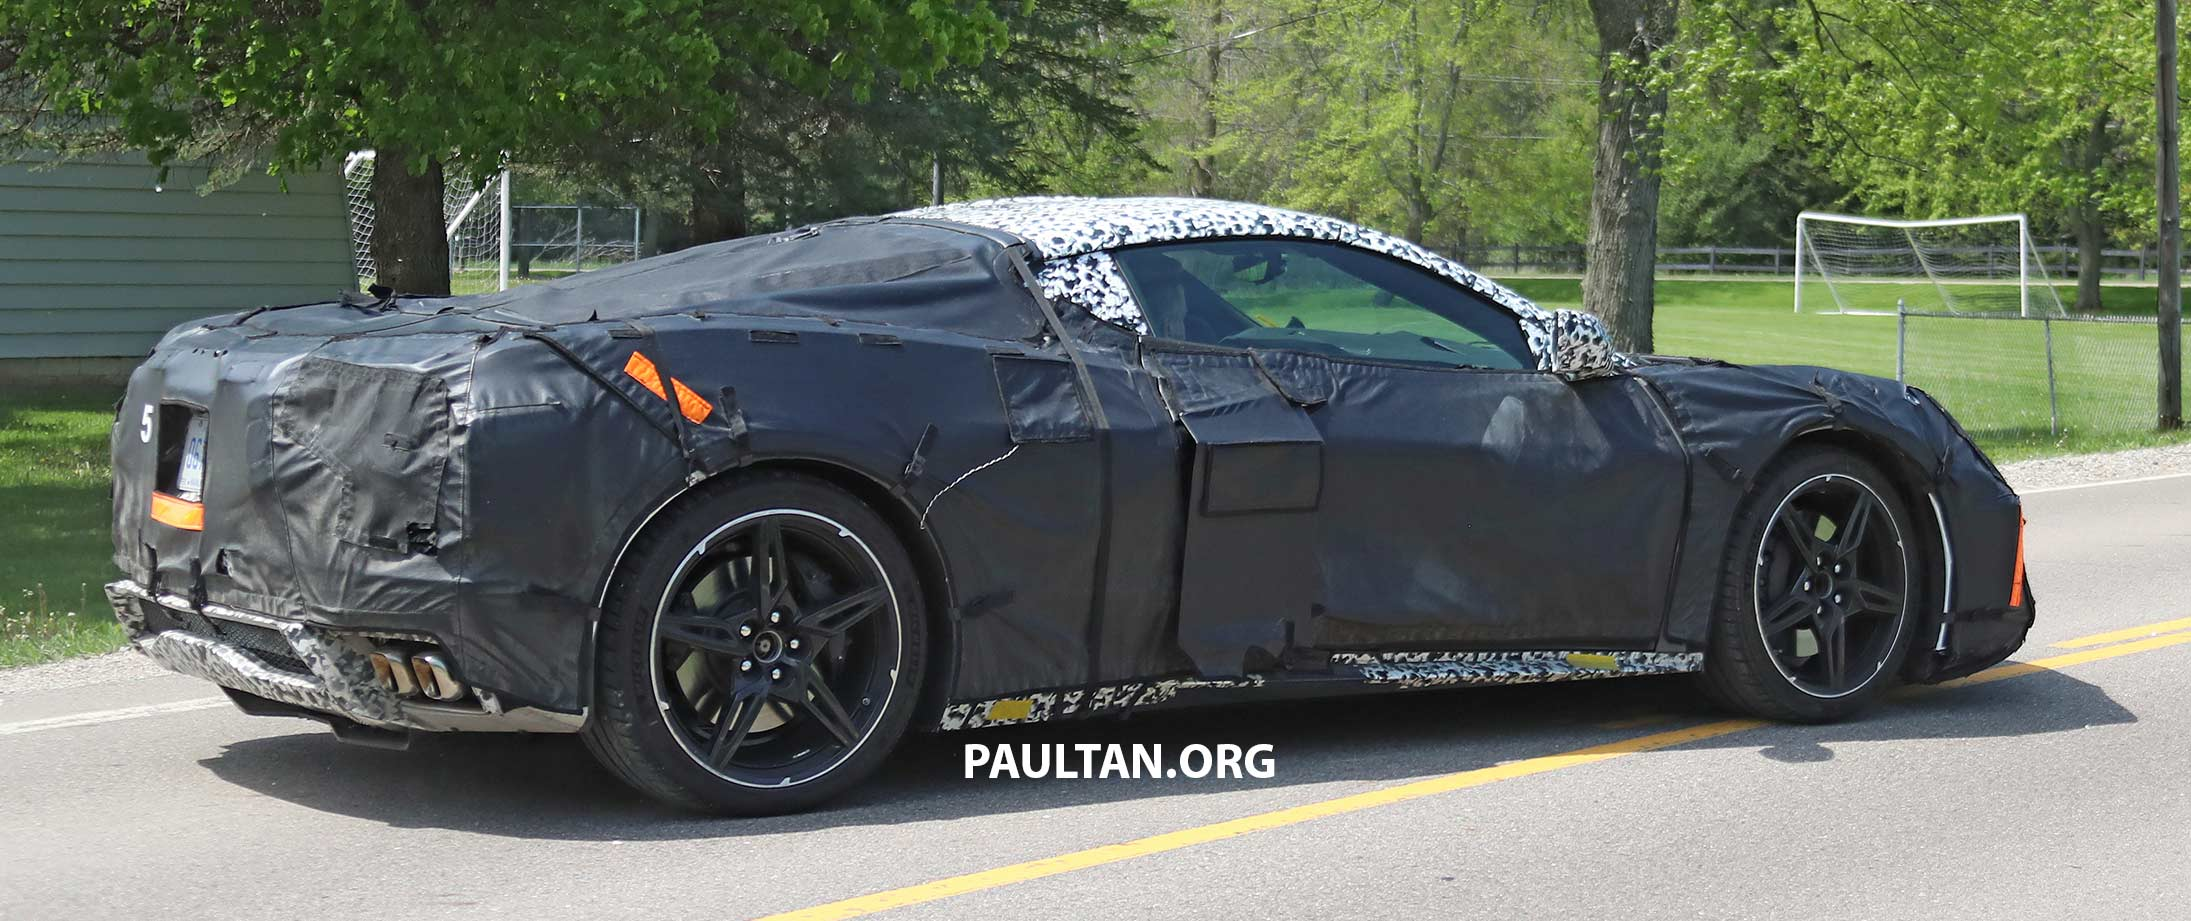 Mid Engine Corvette >> SPIED: Mid-engined Chevrolet Corvette spotted again Paul Tan - Image 819575